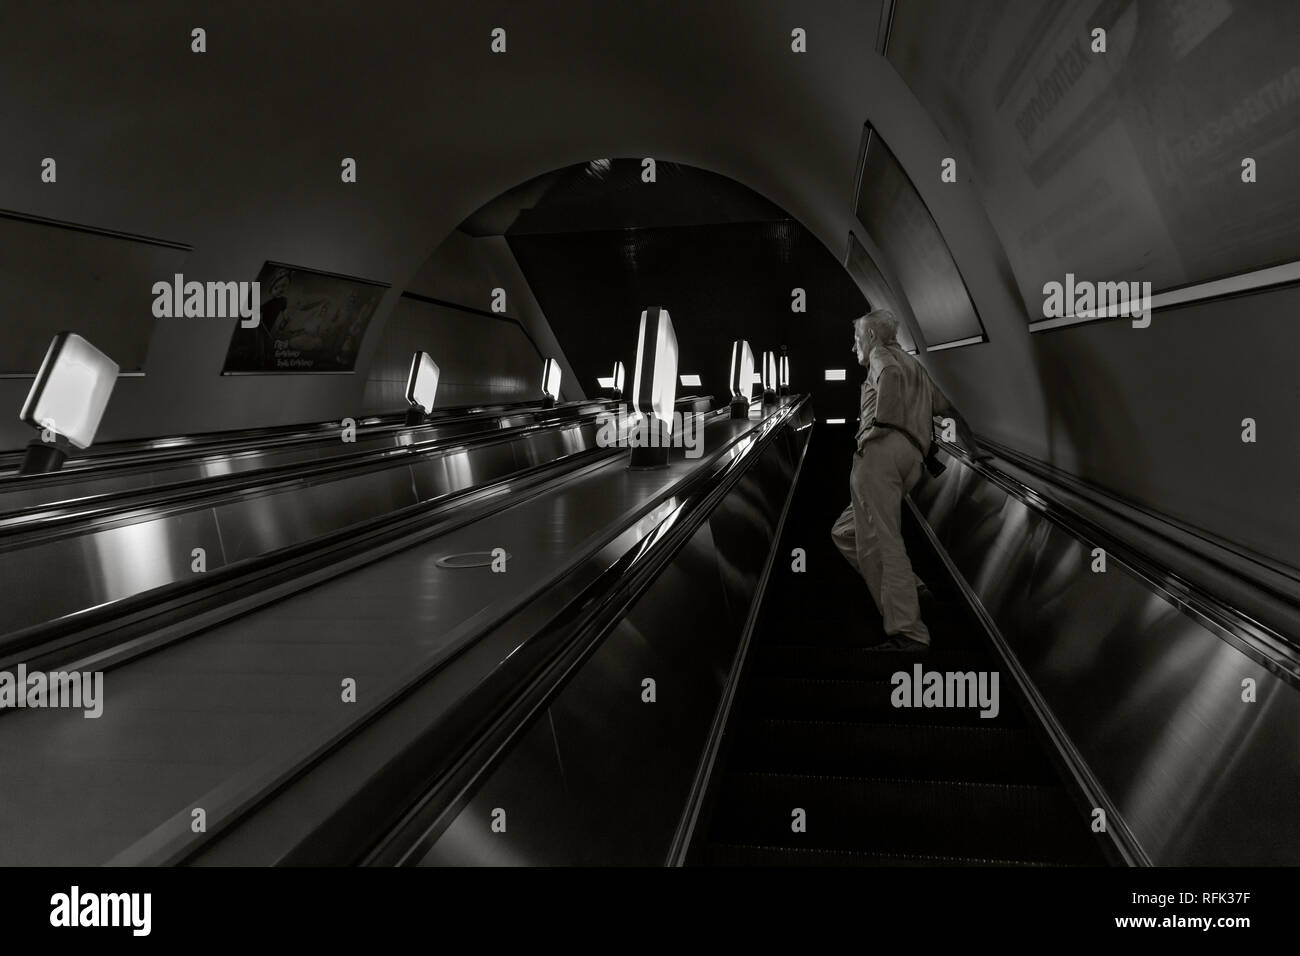 Man on an escalator, Baikonur Metro Station, Alamty, Kazakhstan - Stock Image